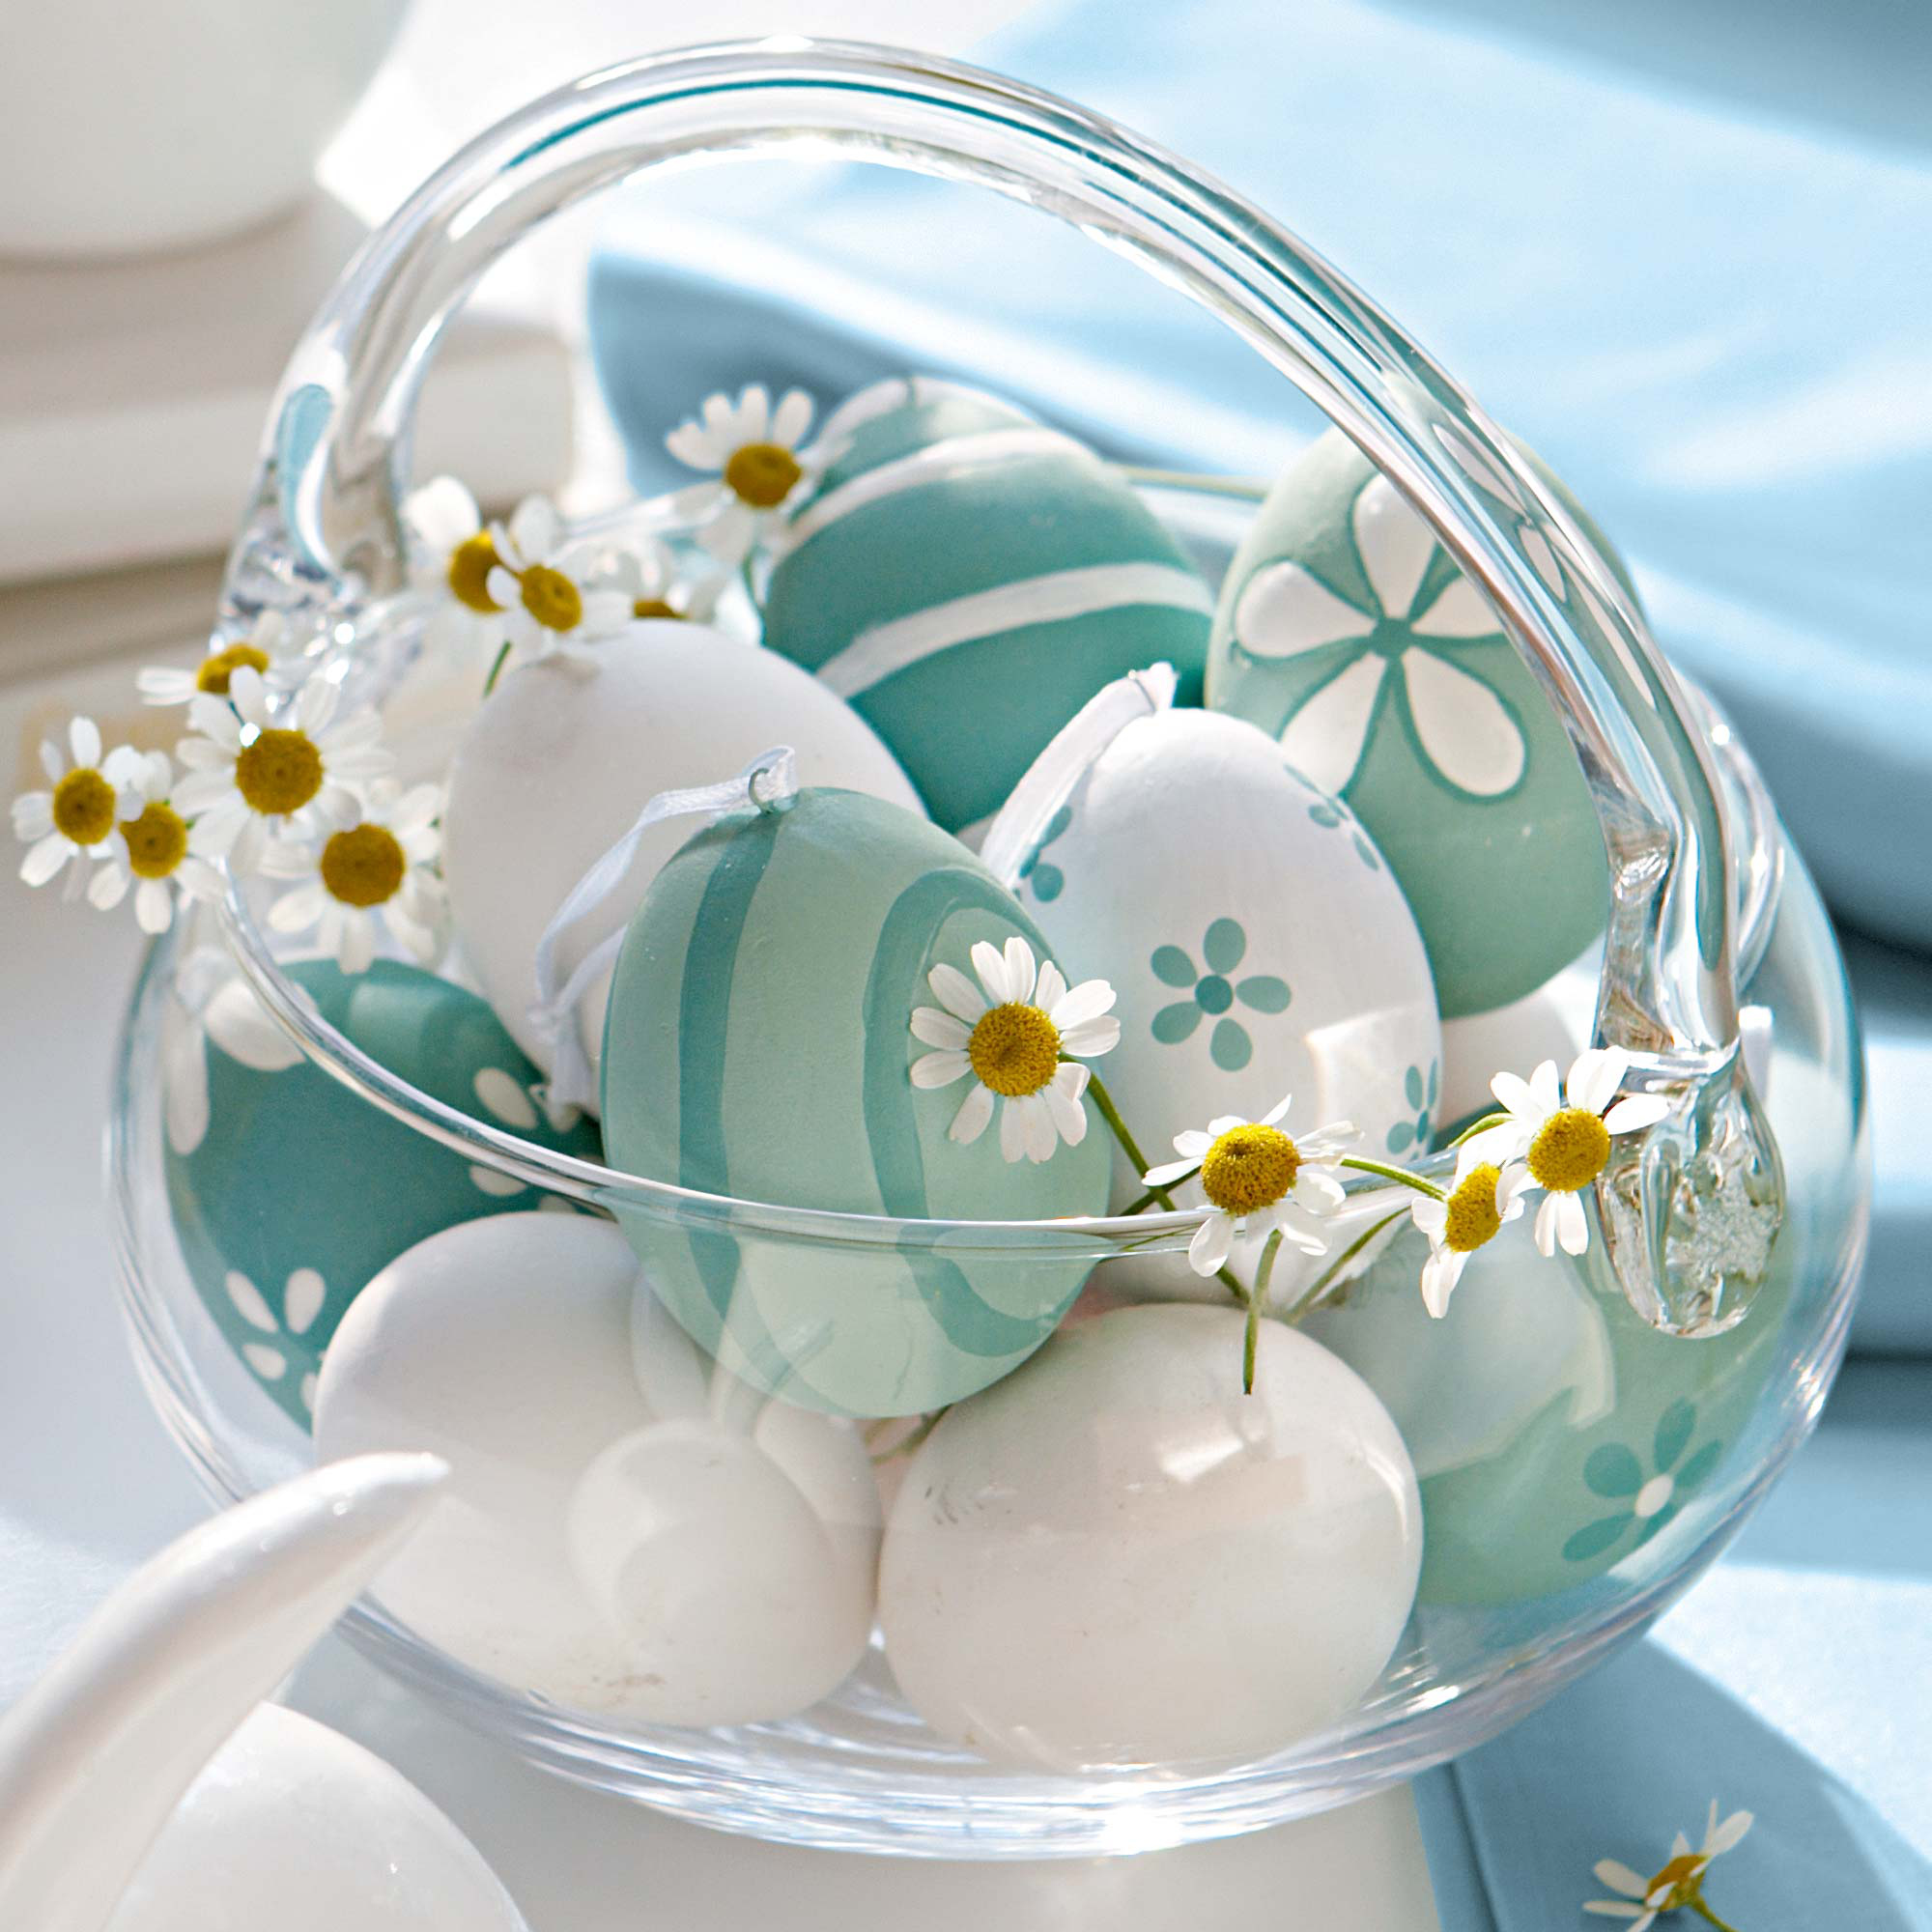 Easter Decorating Ideas   Home Bunch Interior Design Ideas Via Impressionen